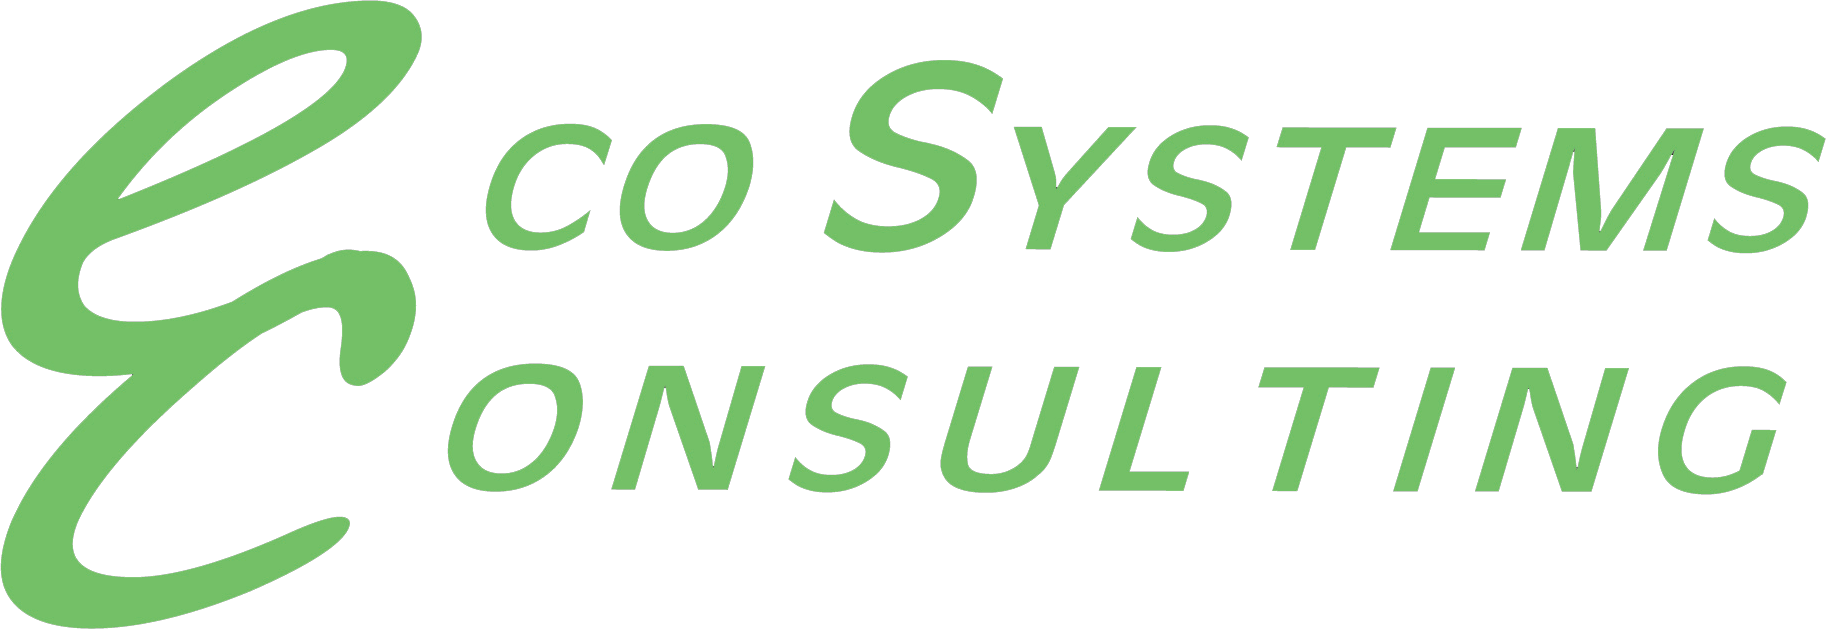 Eco System Consulting logo